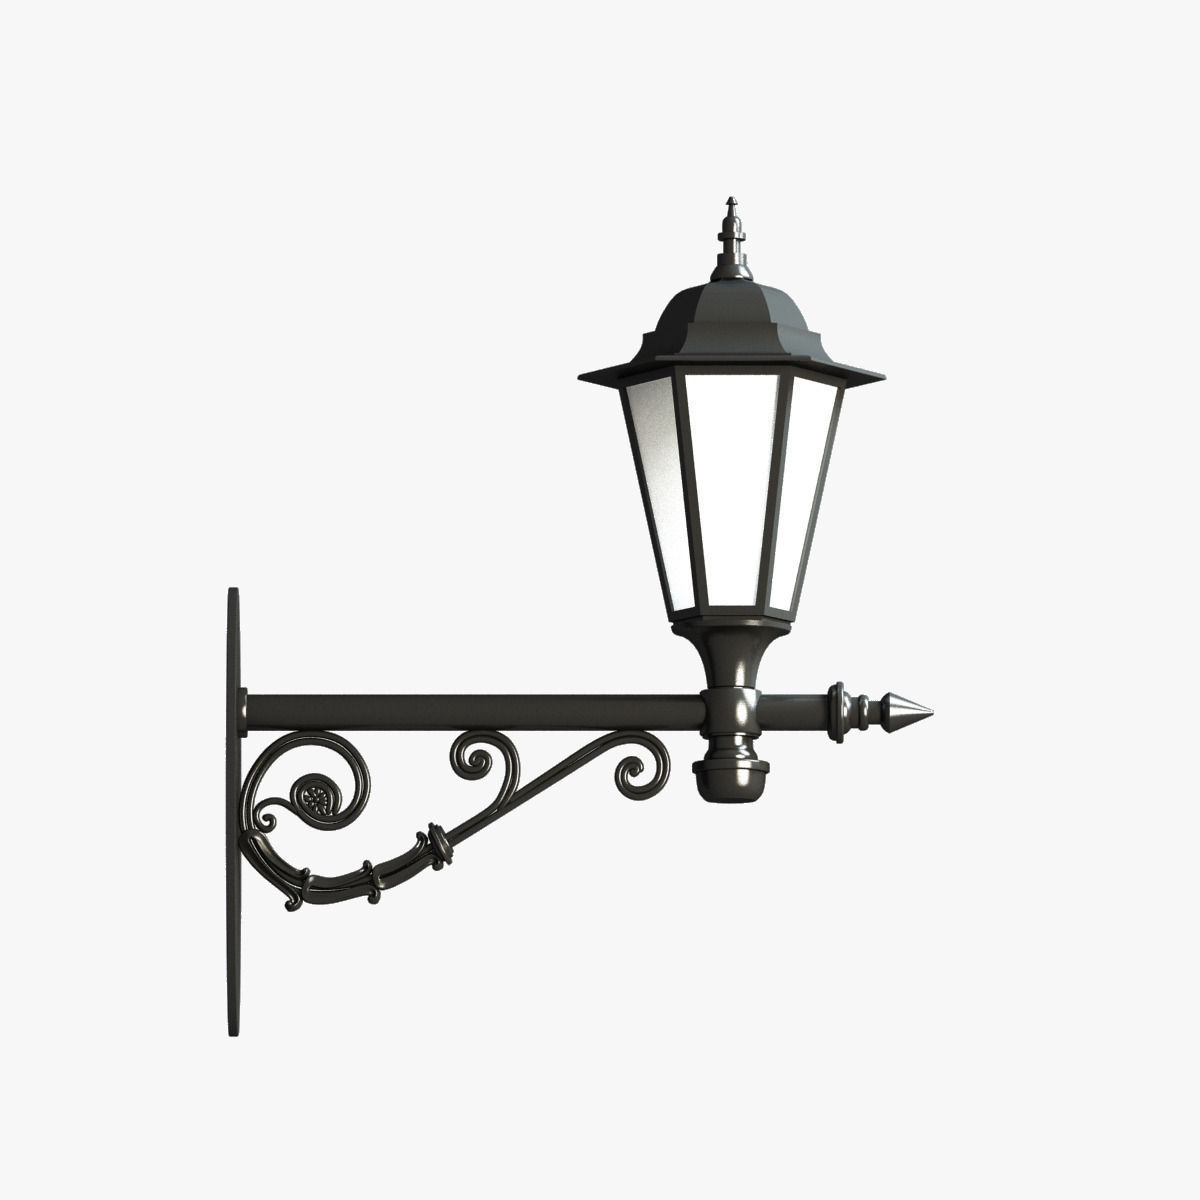 3D model Classic Street Wall Lantern 4   CGTrader for Classic Street Lamp  568zmd